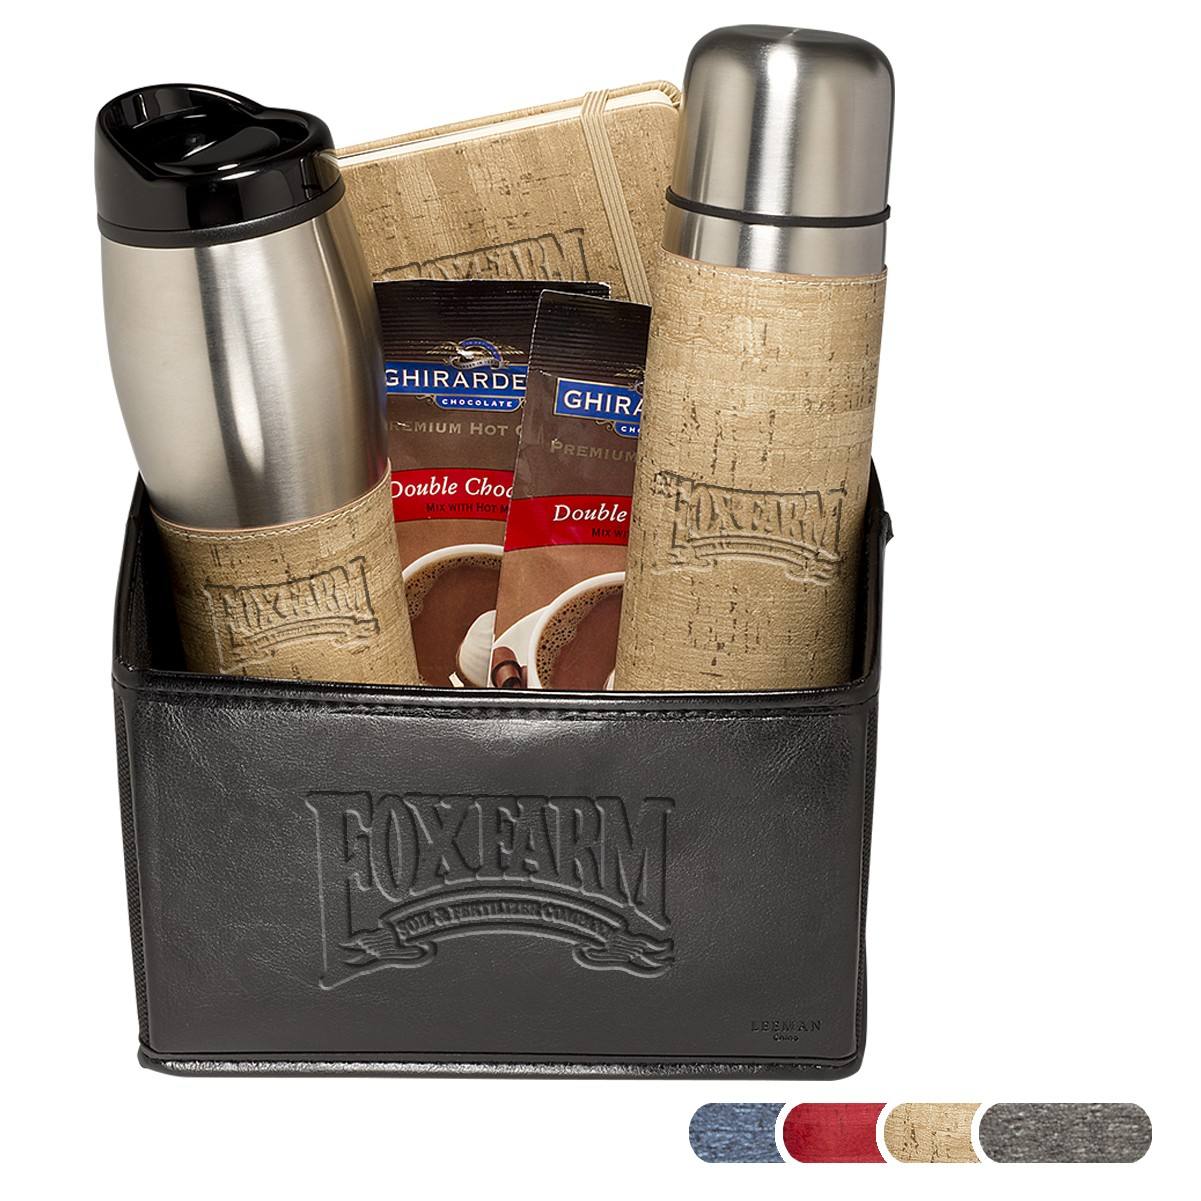 Casablanca™ Thermos/Tumblers/Journal/Ghirardelli Gift Set